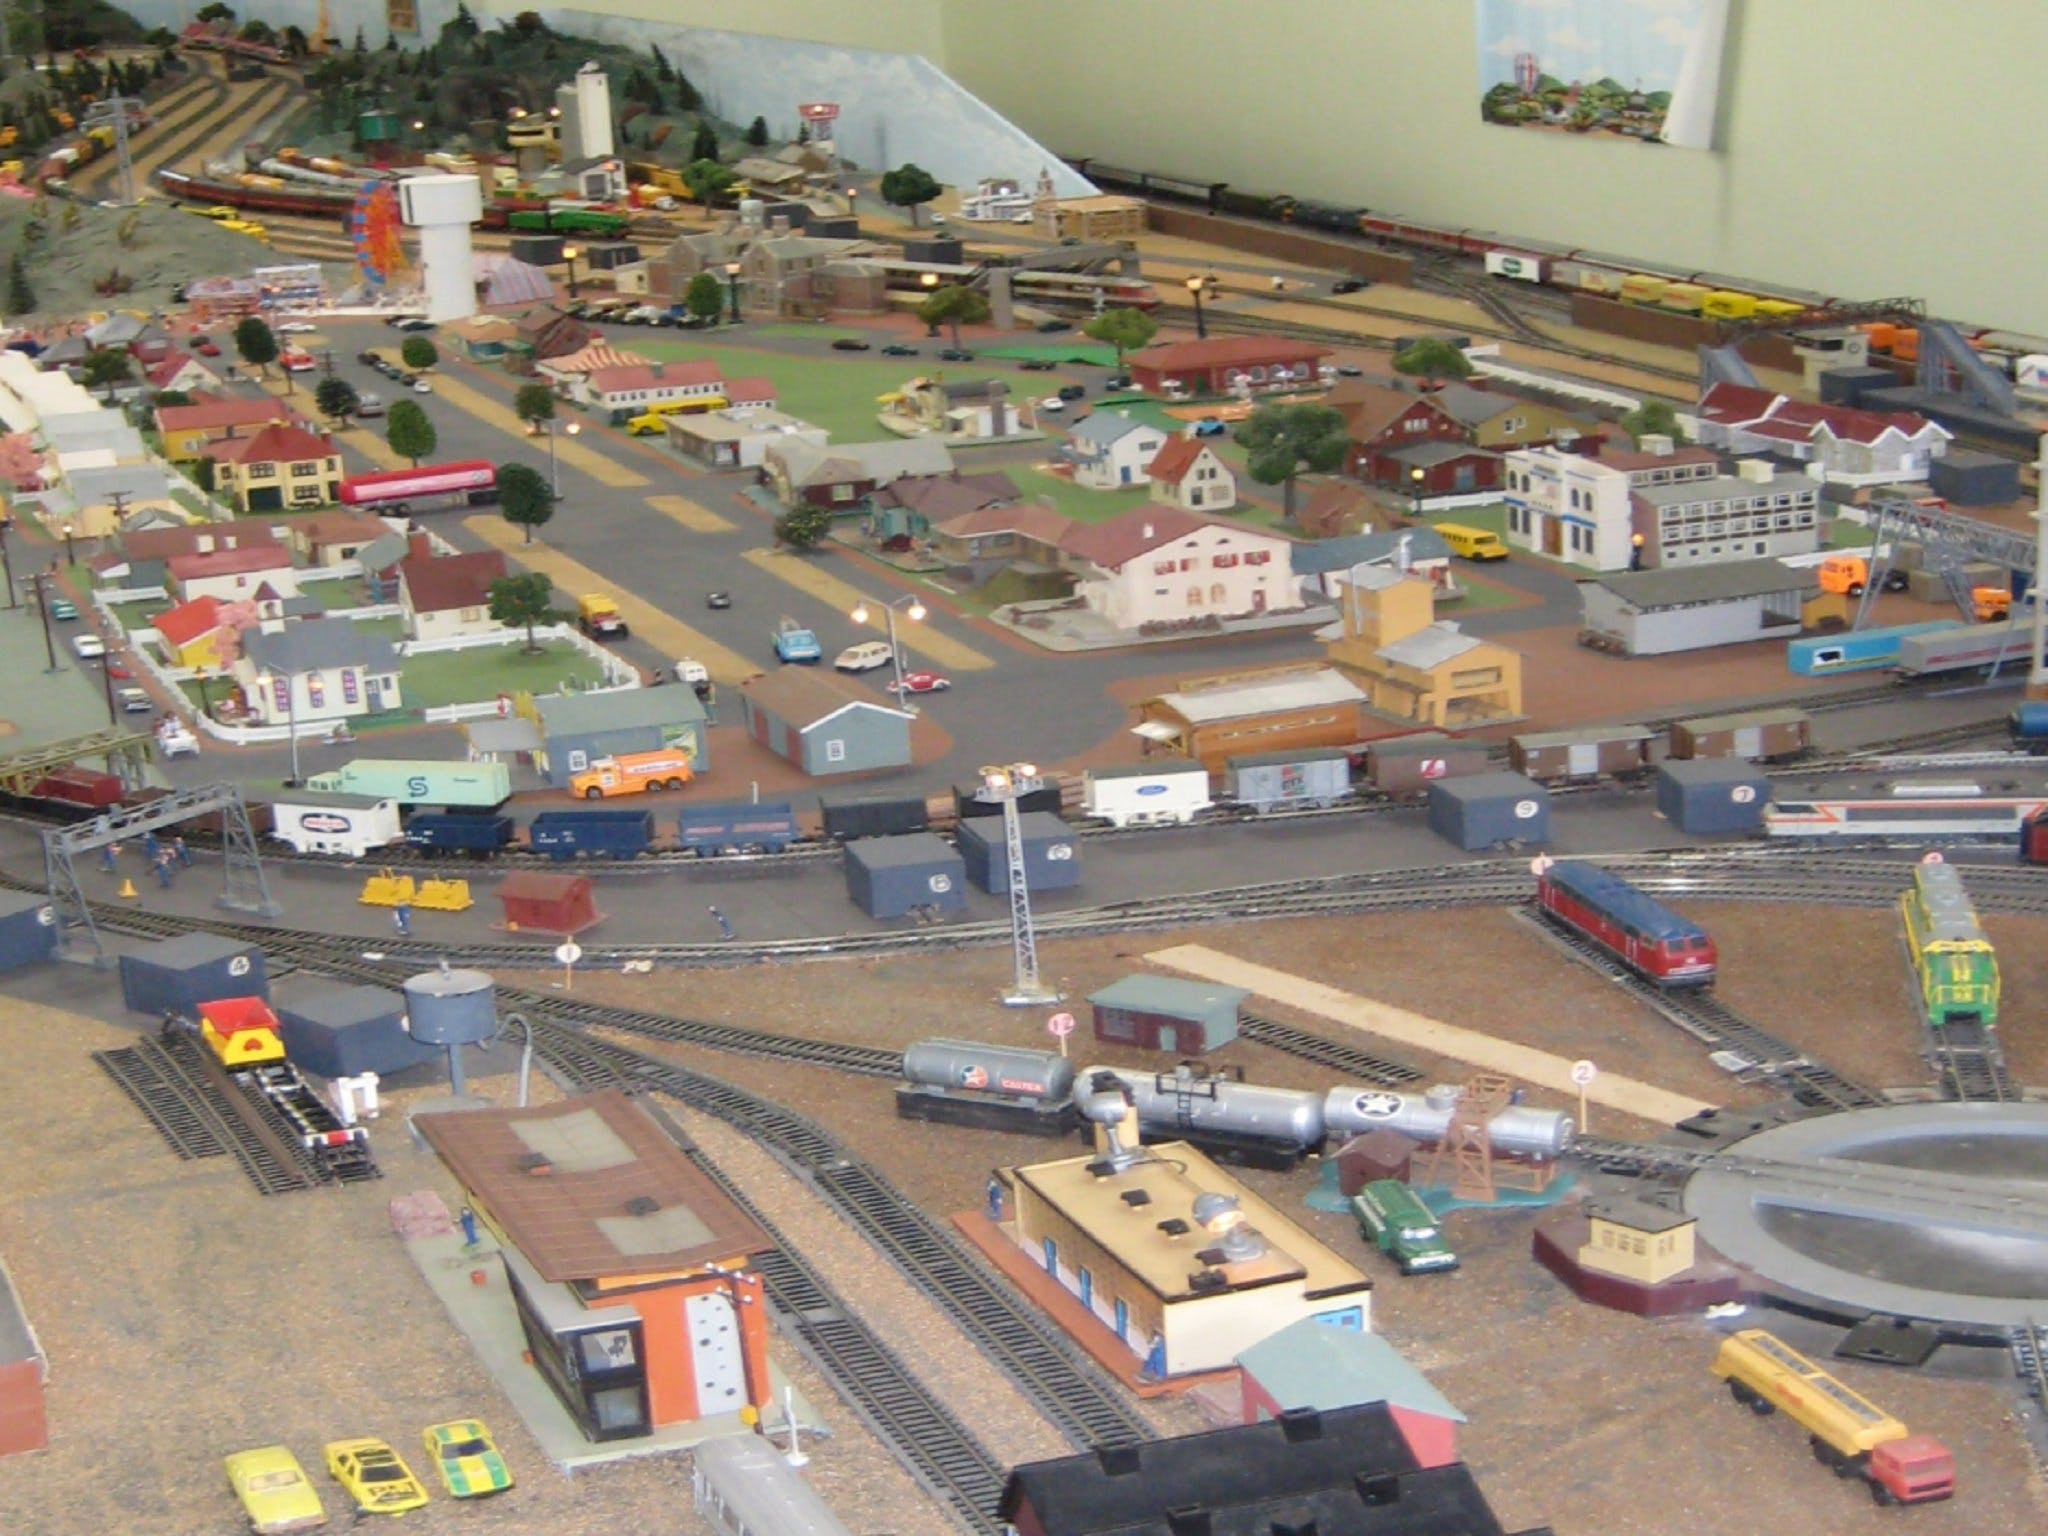 Heywood Model Trains - ACT Tourism